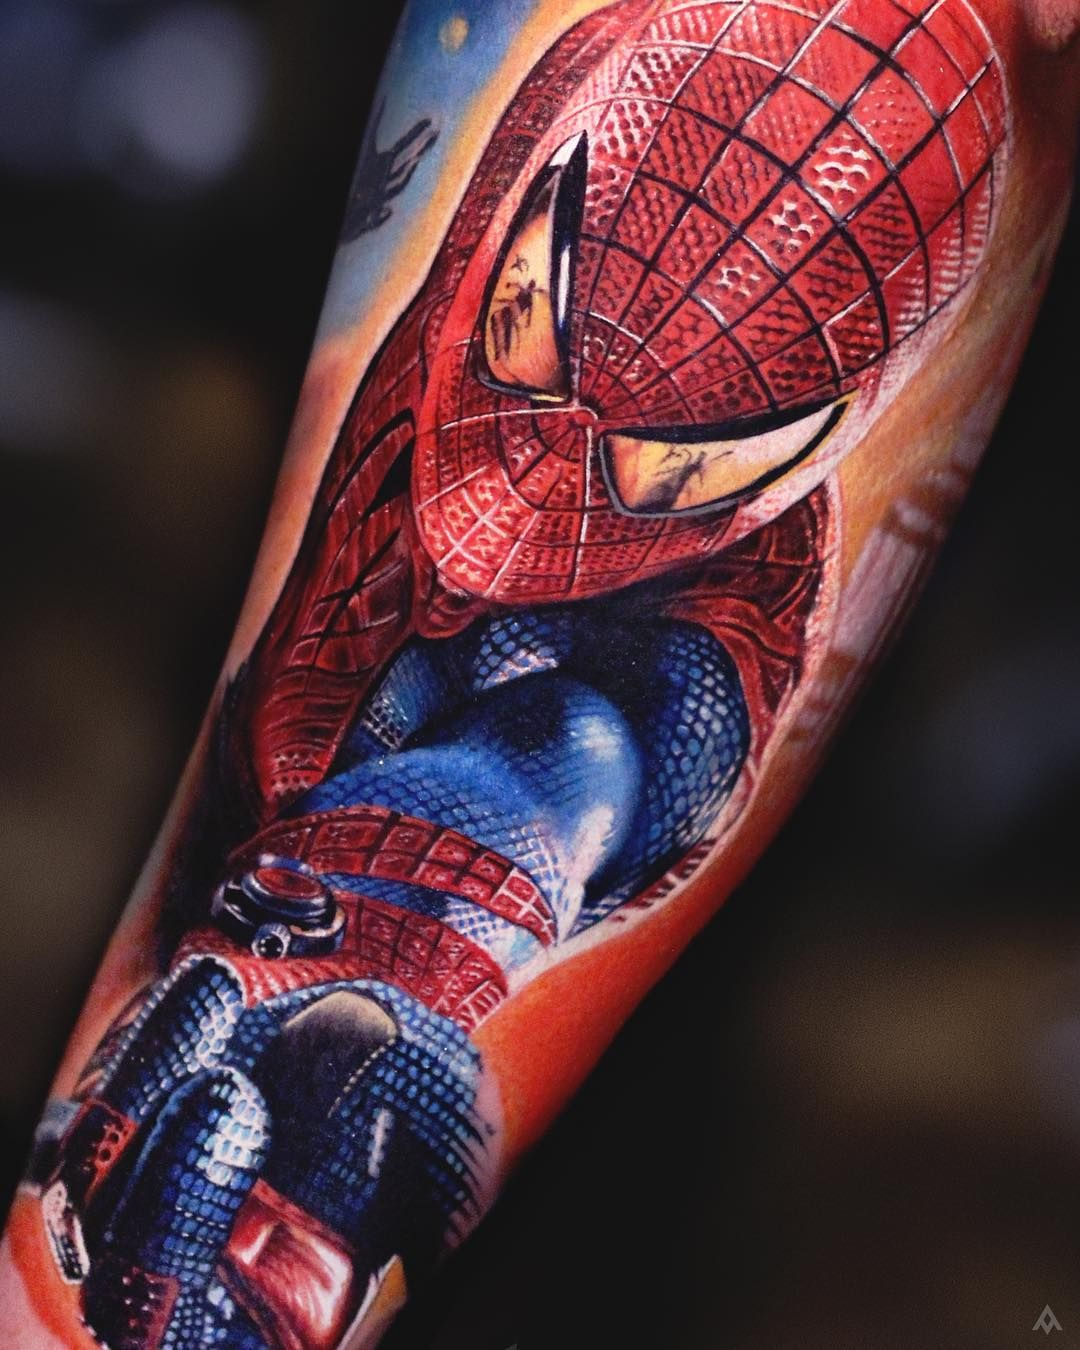 4 335 likes 71 comments luka lajoie lukalajoie on for Spiderman tattoo arm